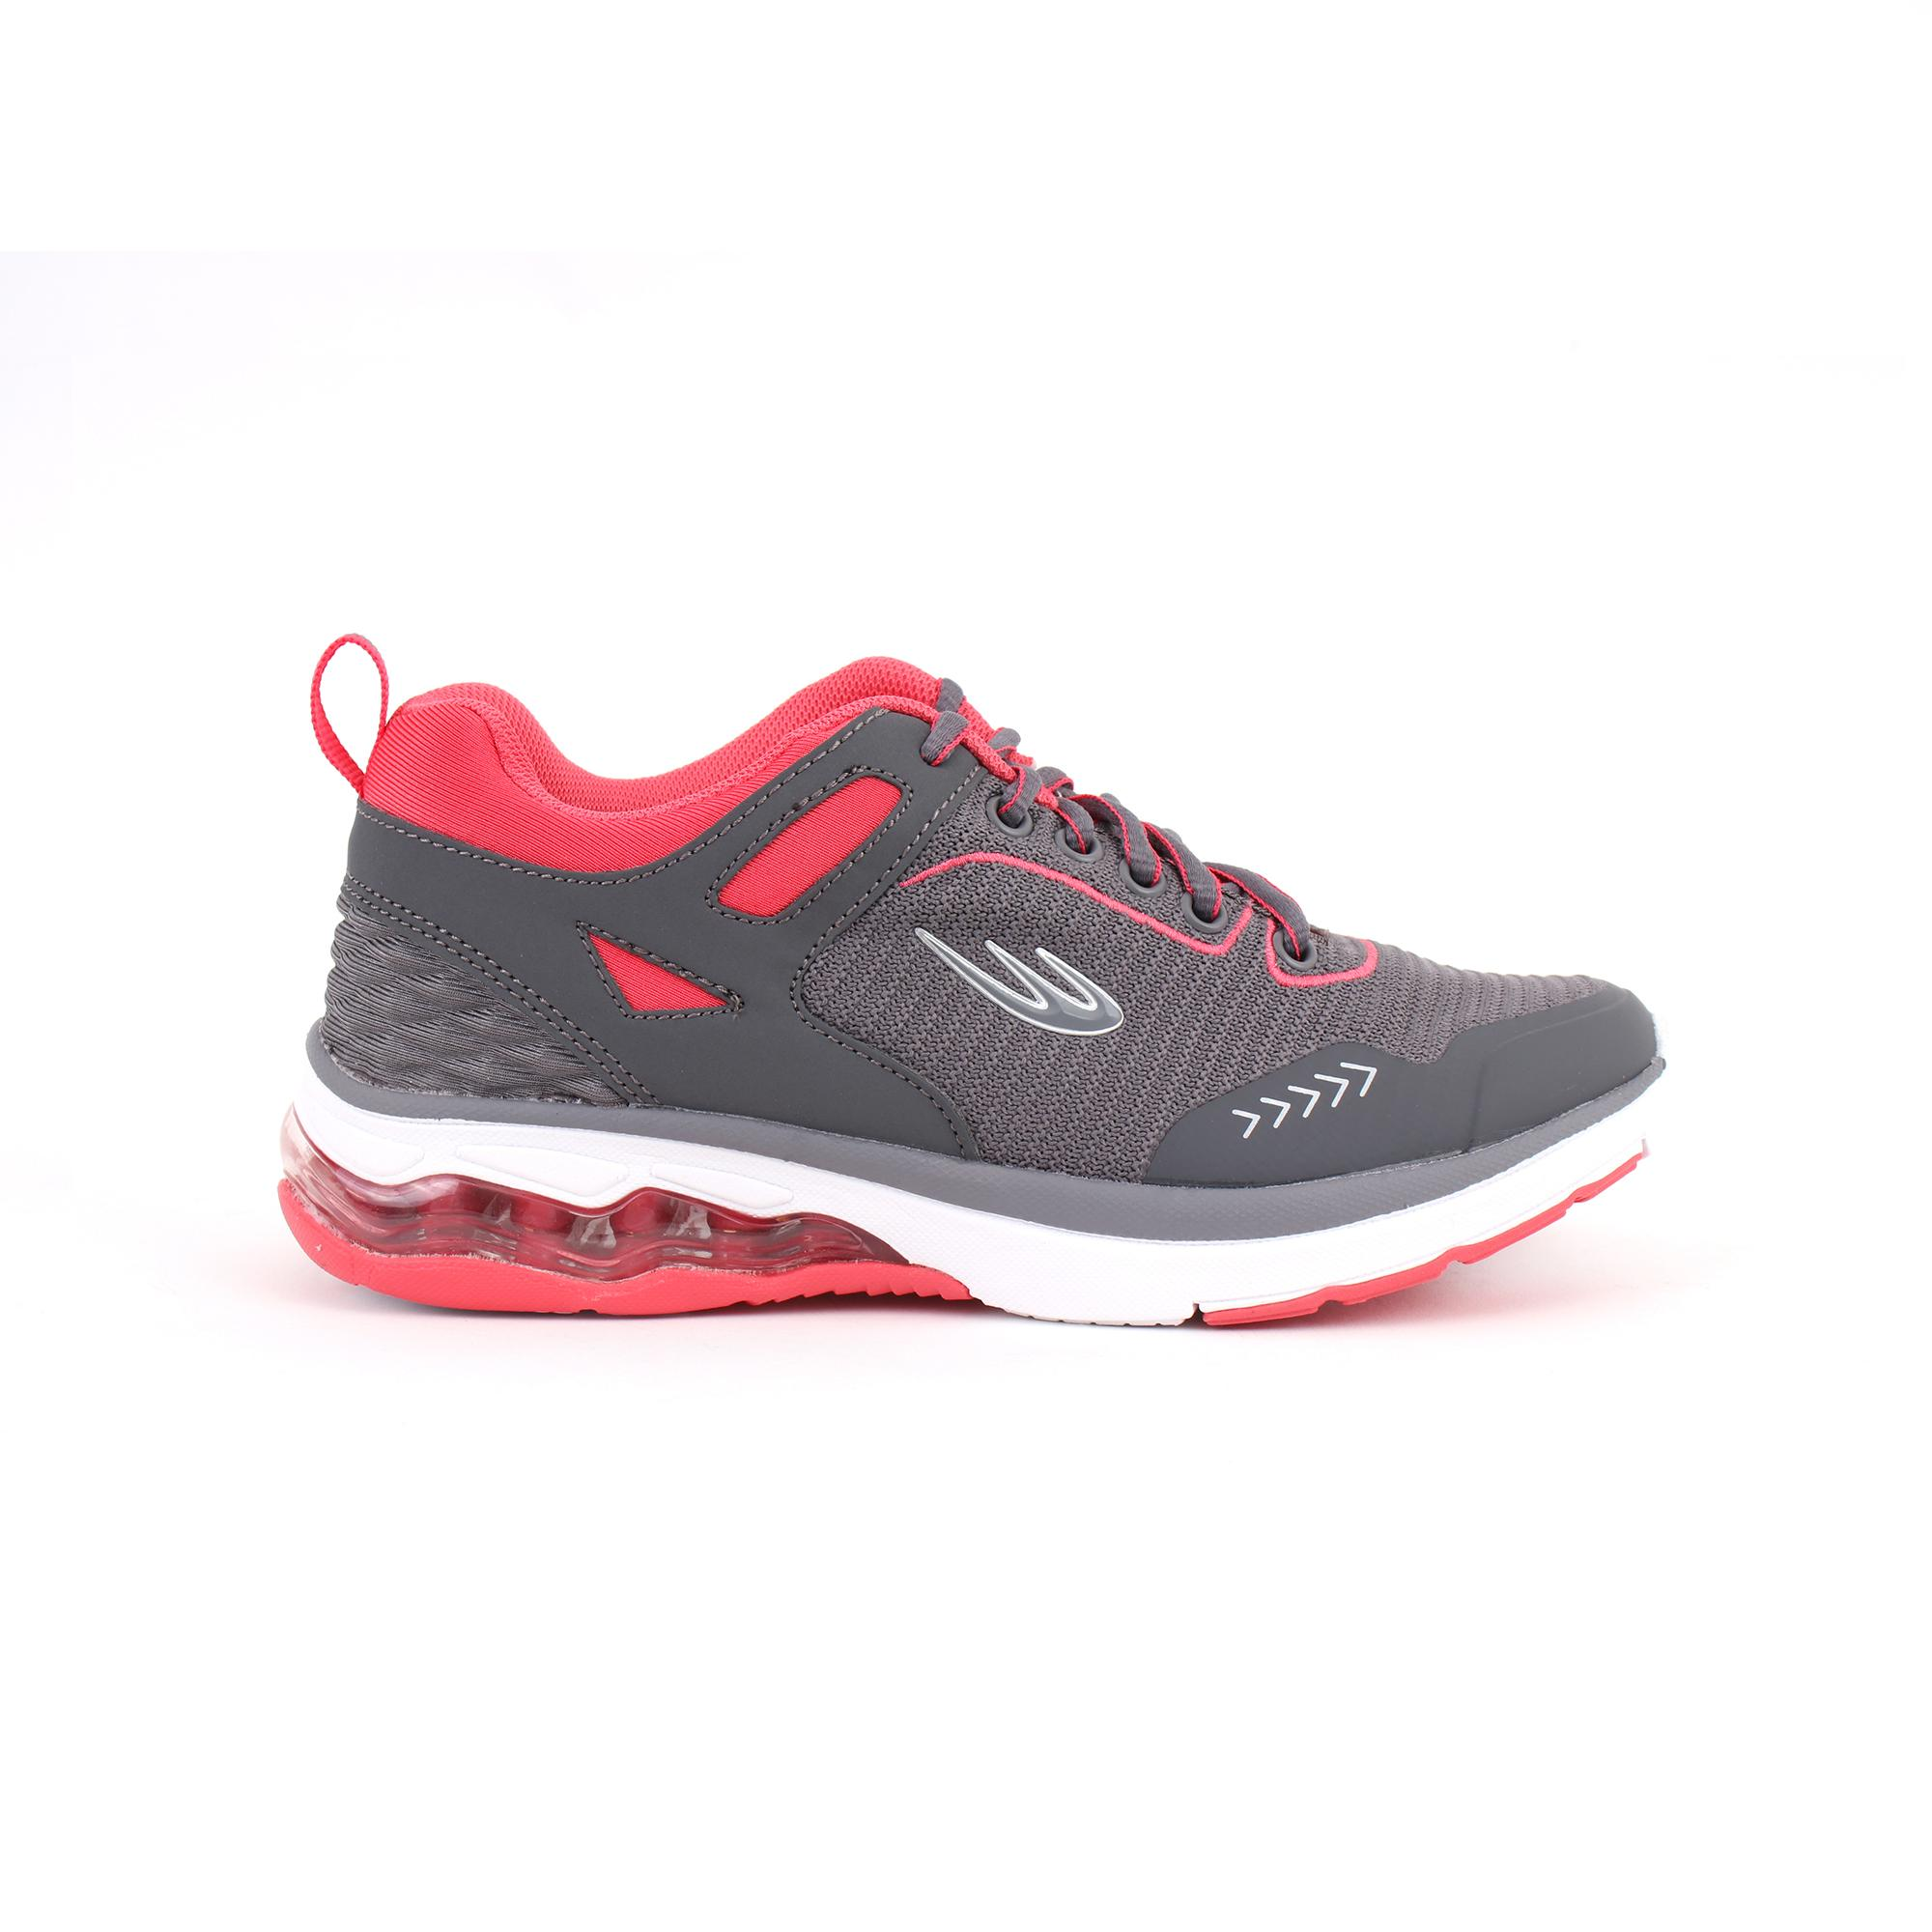 Buy New Balance products online Robinsons Singapore